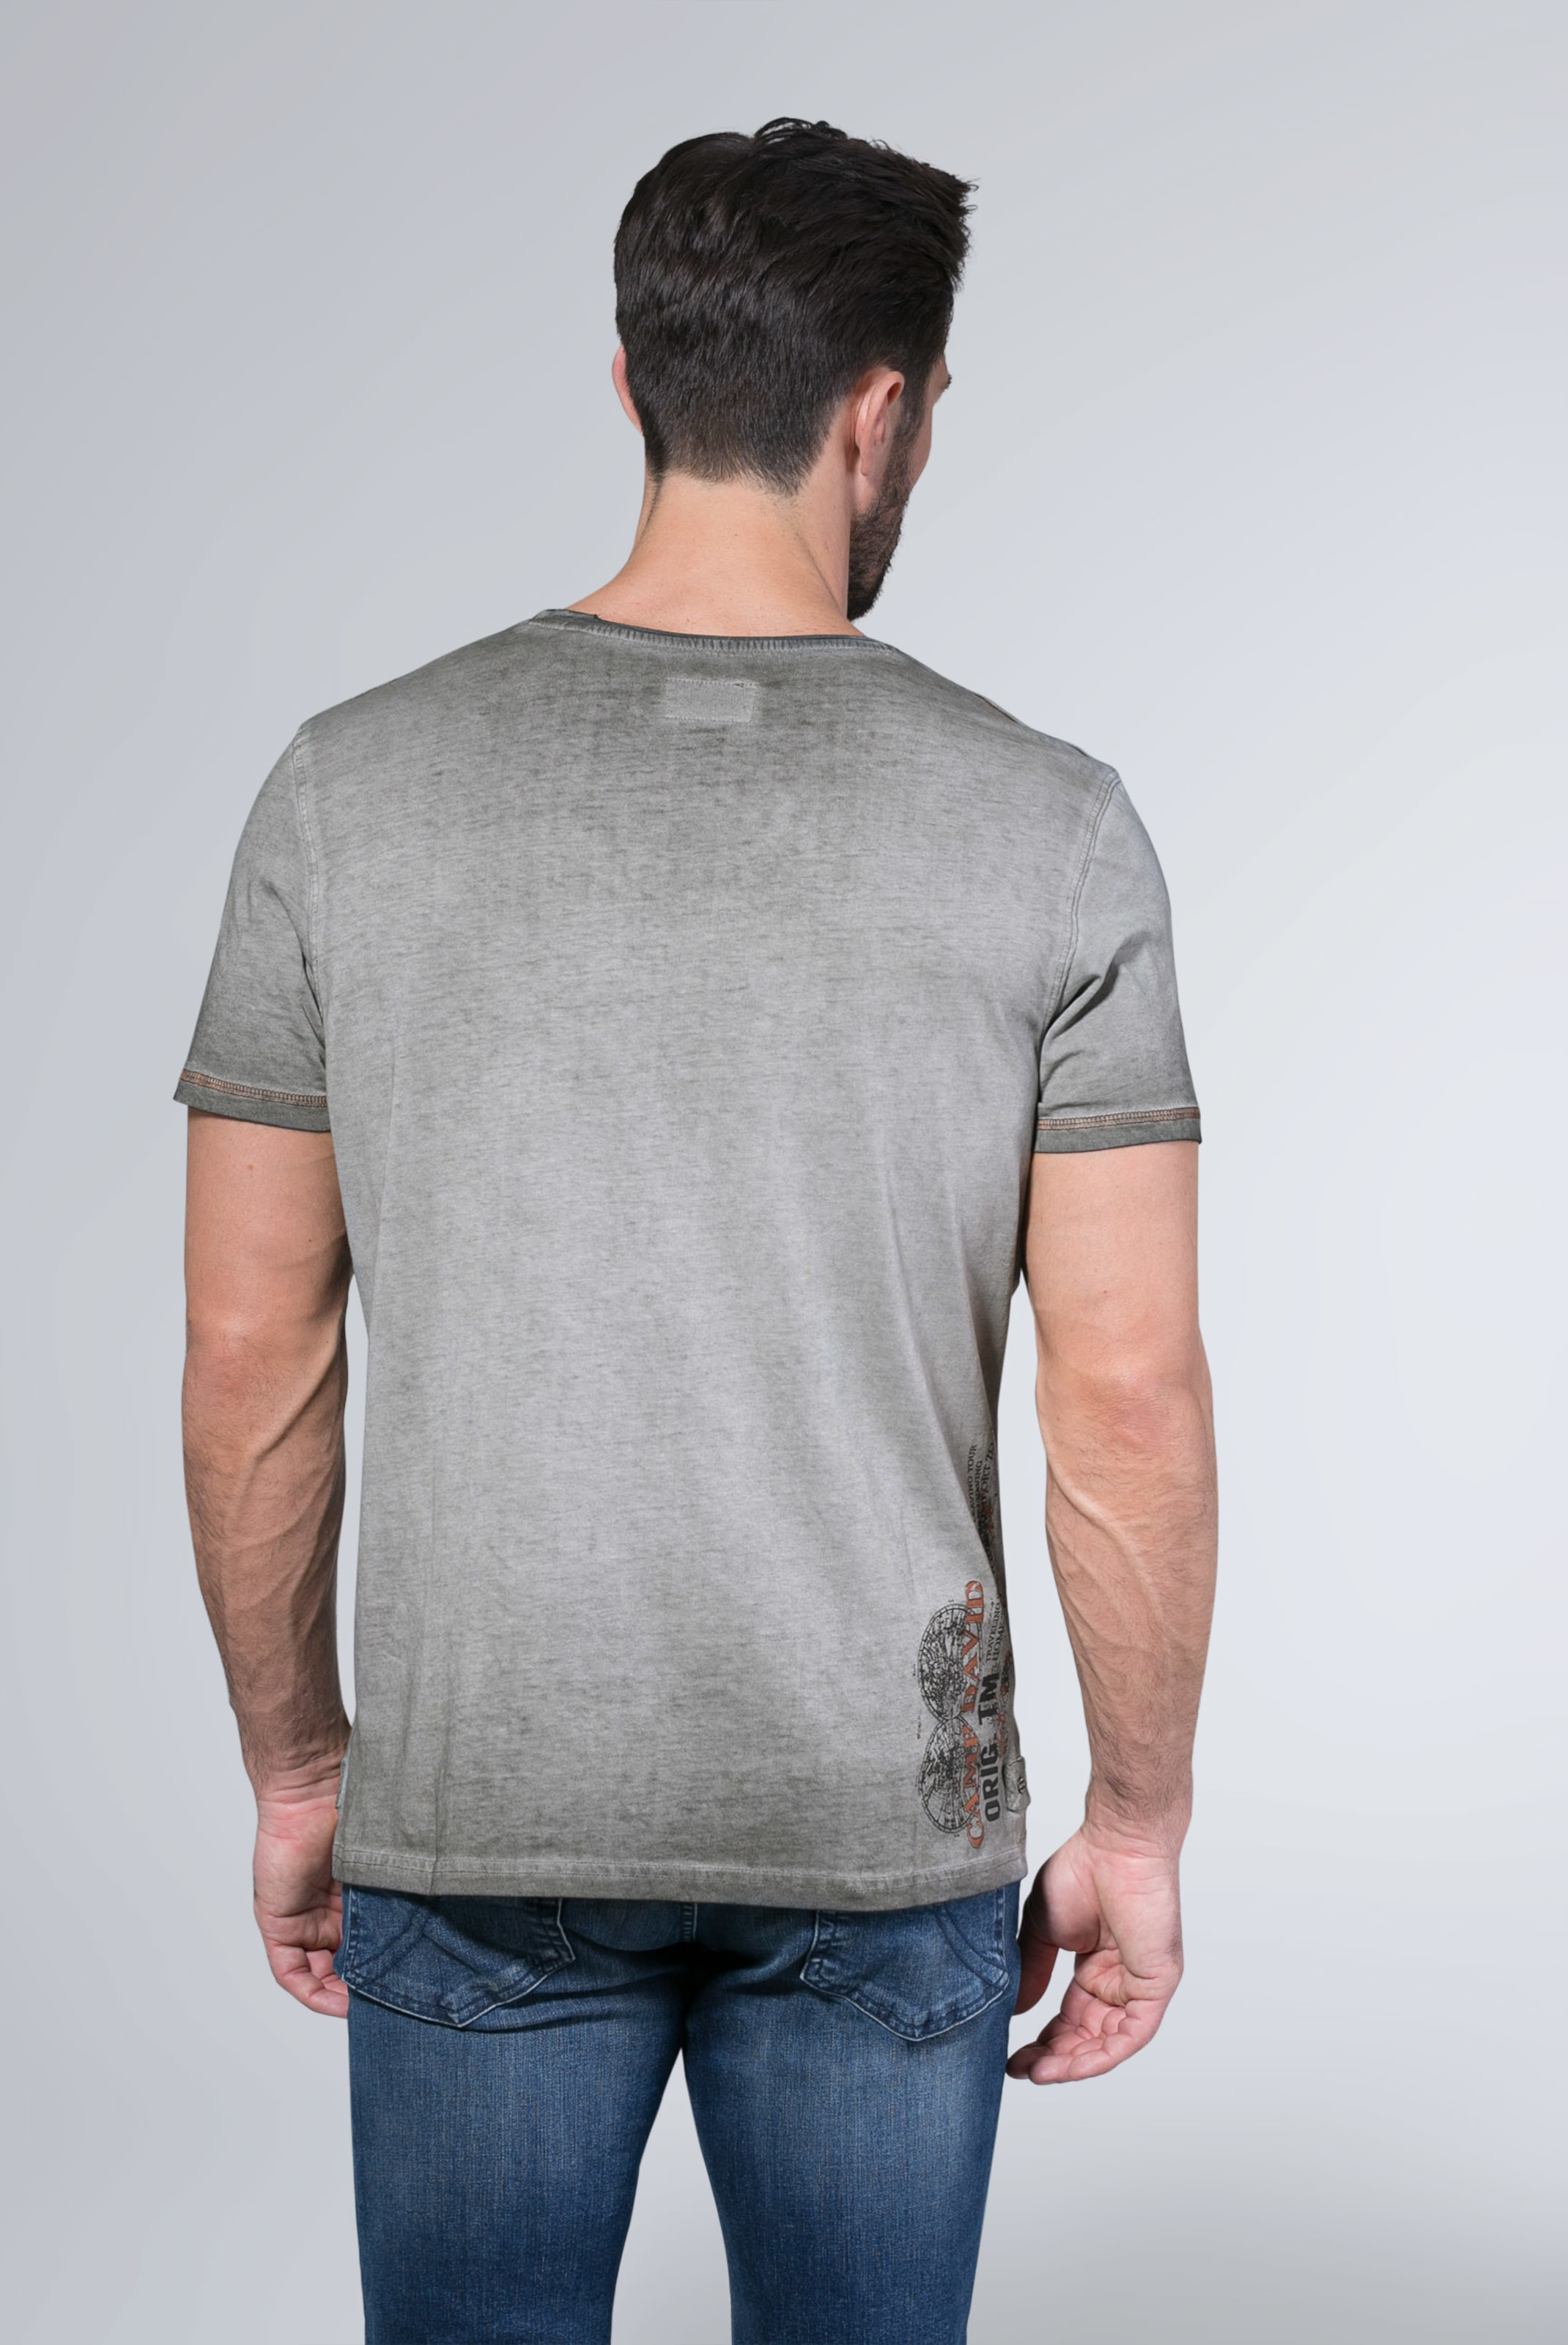 2018 shoes hot products factory authentic Camp David T In shirt CamelMischfarben n08OwPk